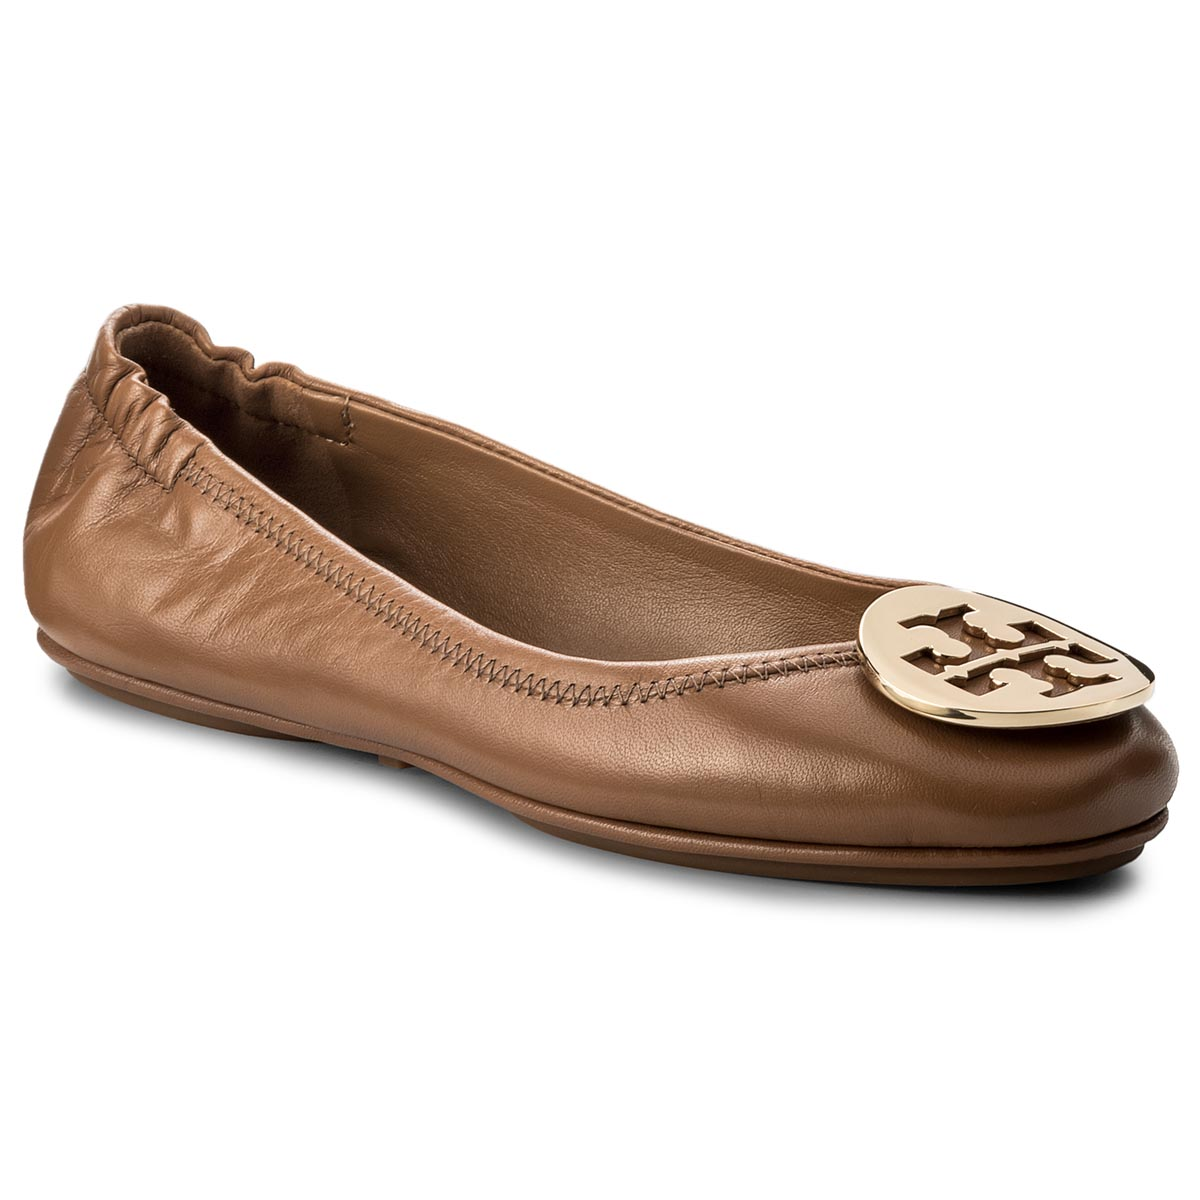 Baleriny TORY BURCH - Minnie Travel Ballet With Metal Logo 32880 Royal Tan/Gold 232